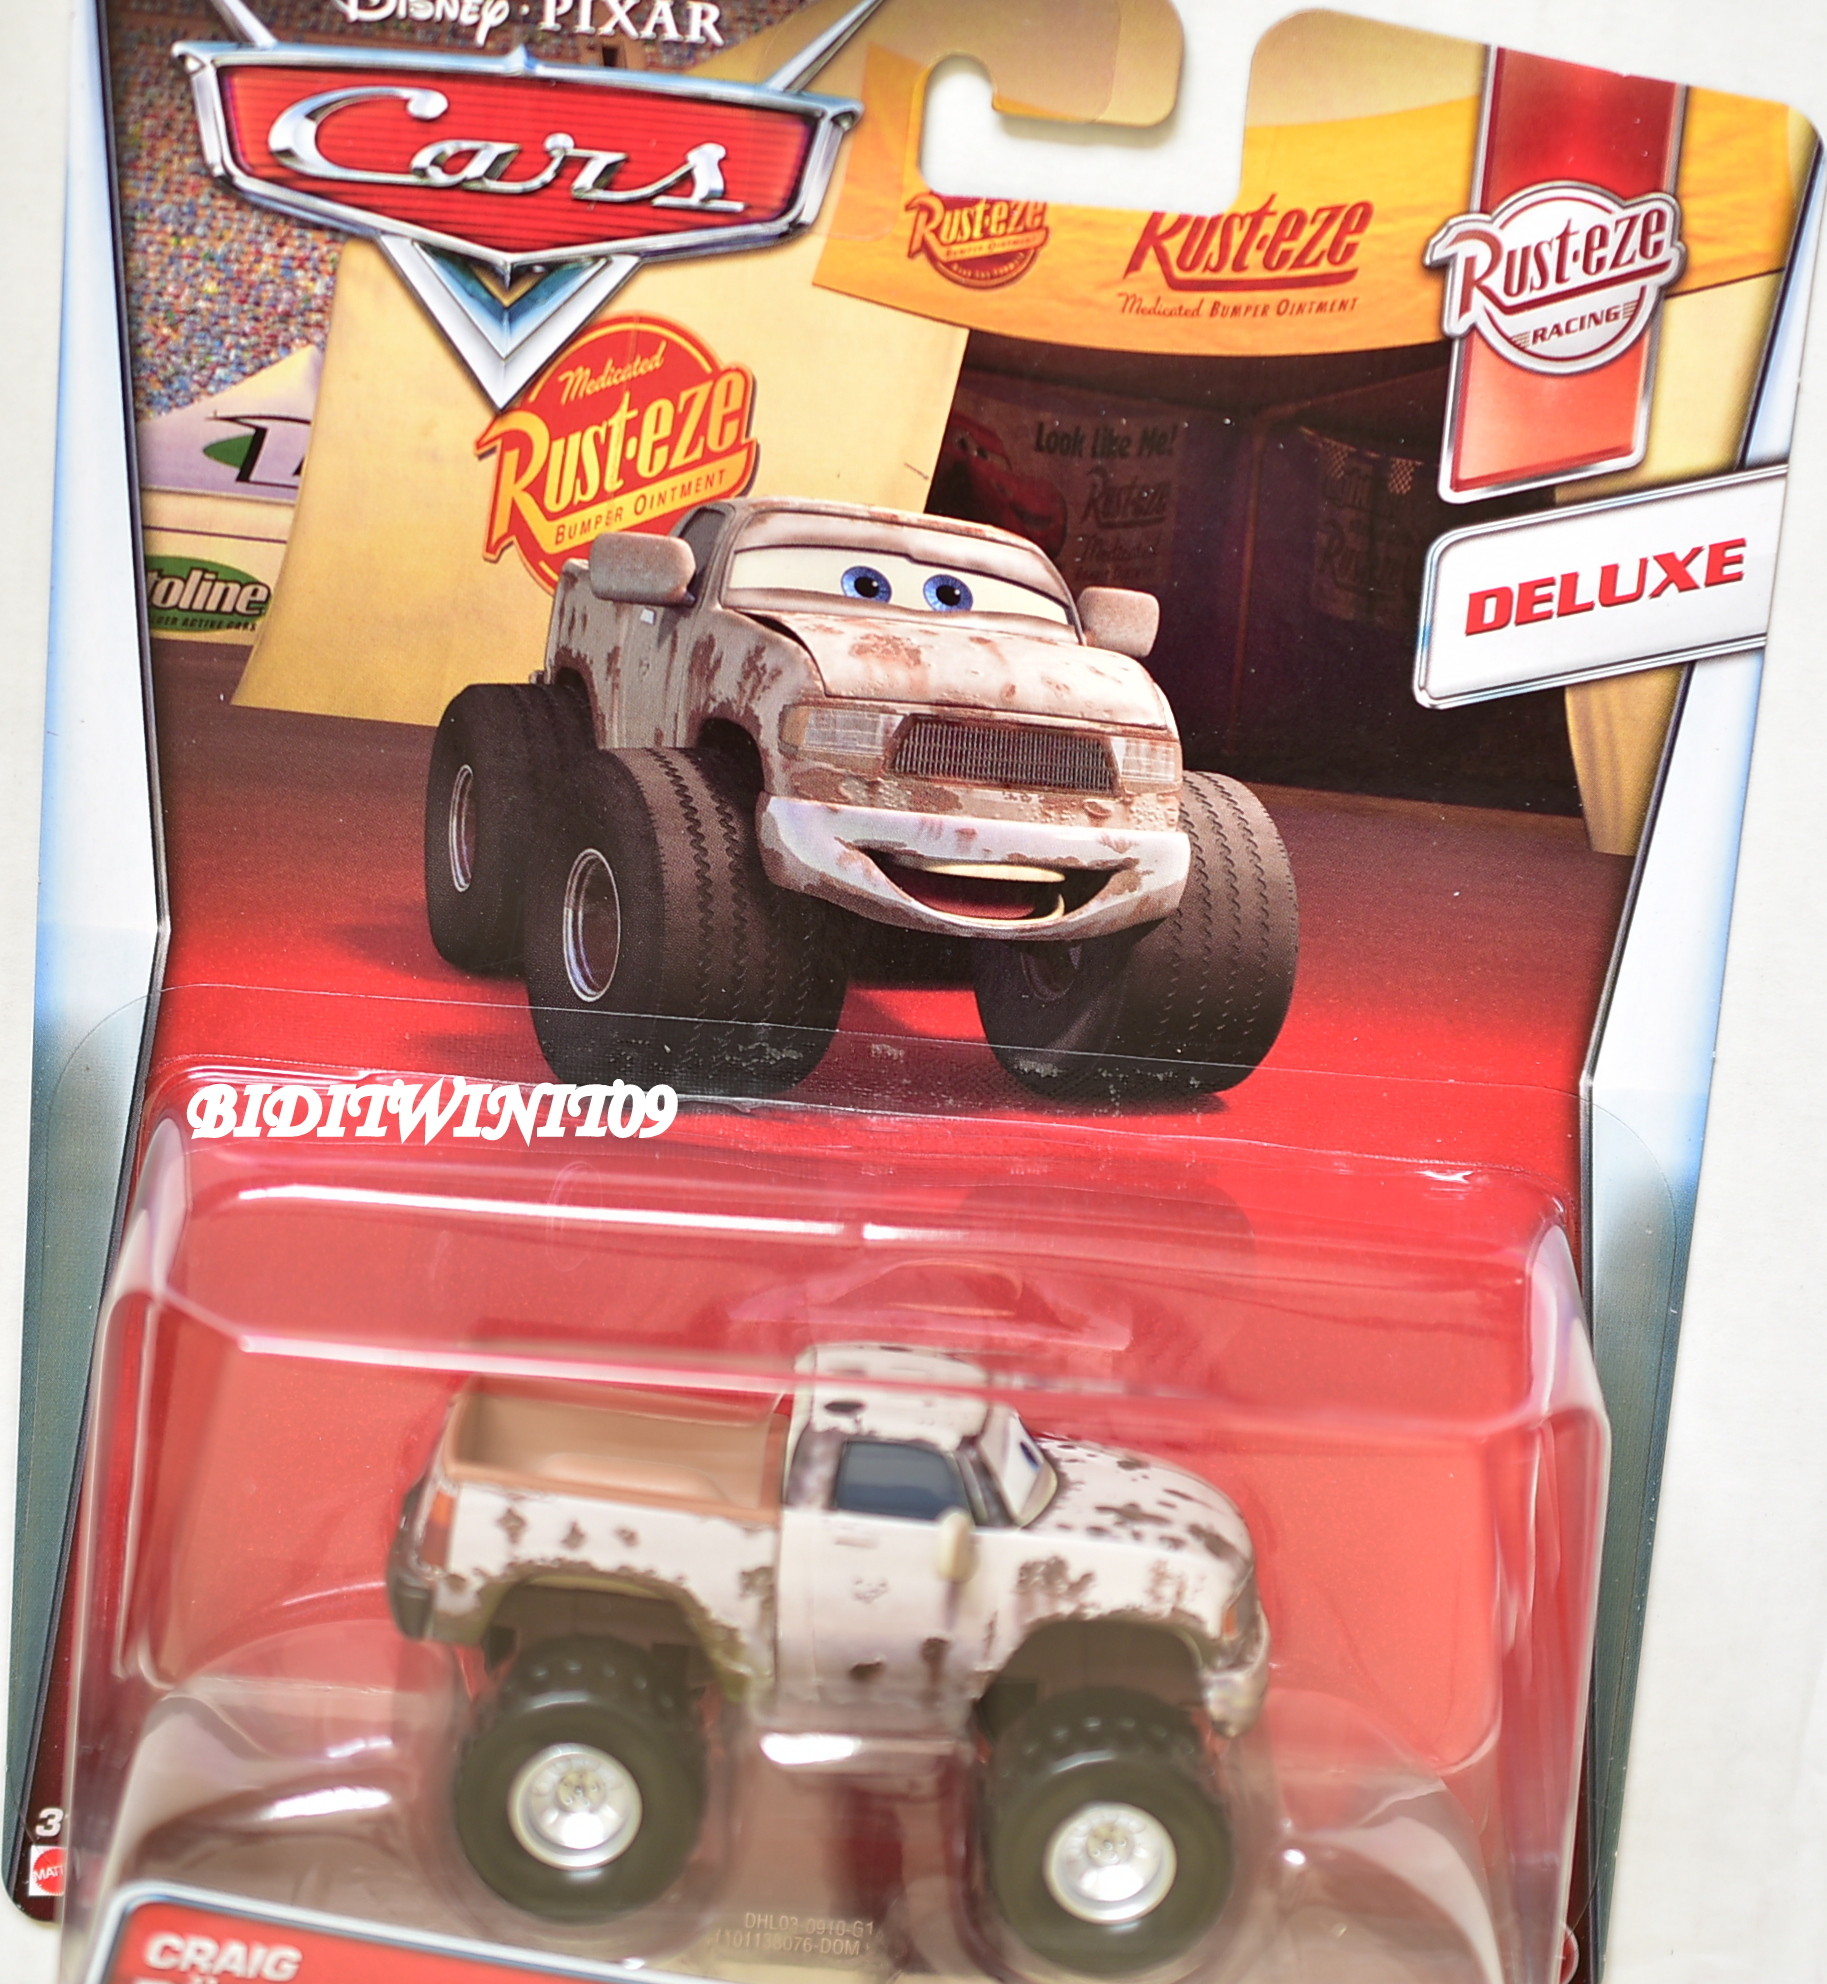 DISNEY PIXAR CARS DELUXE RUST EZE RACING CRAIG FASTER RUST EZE RACING